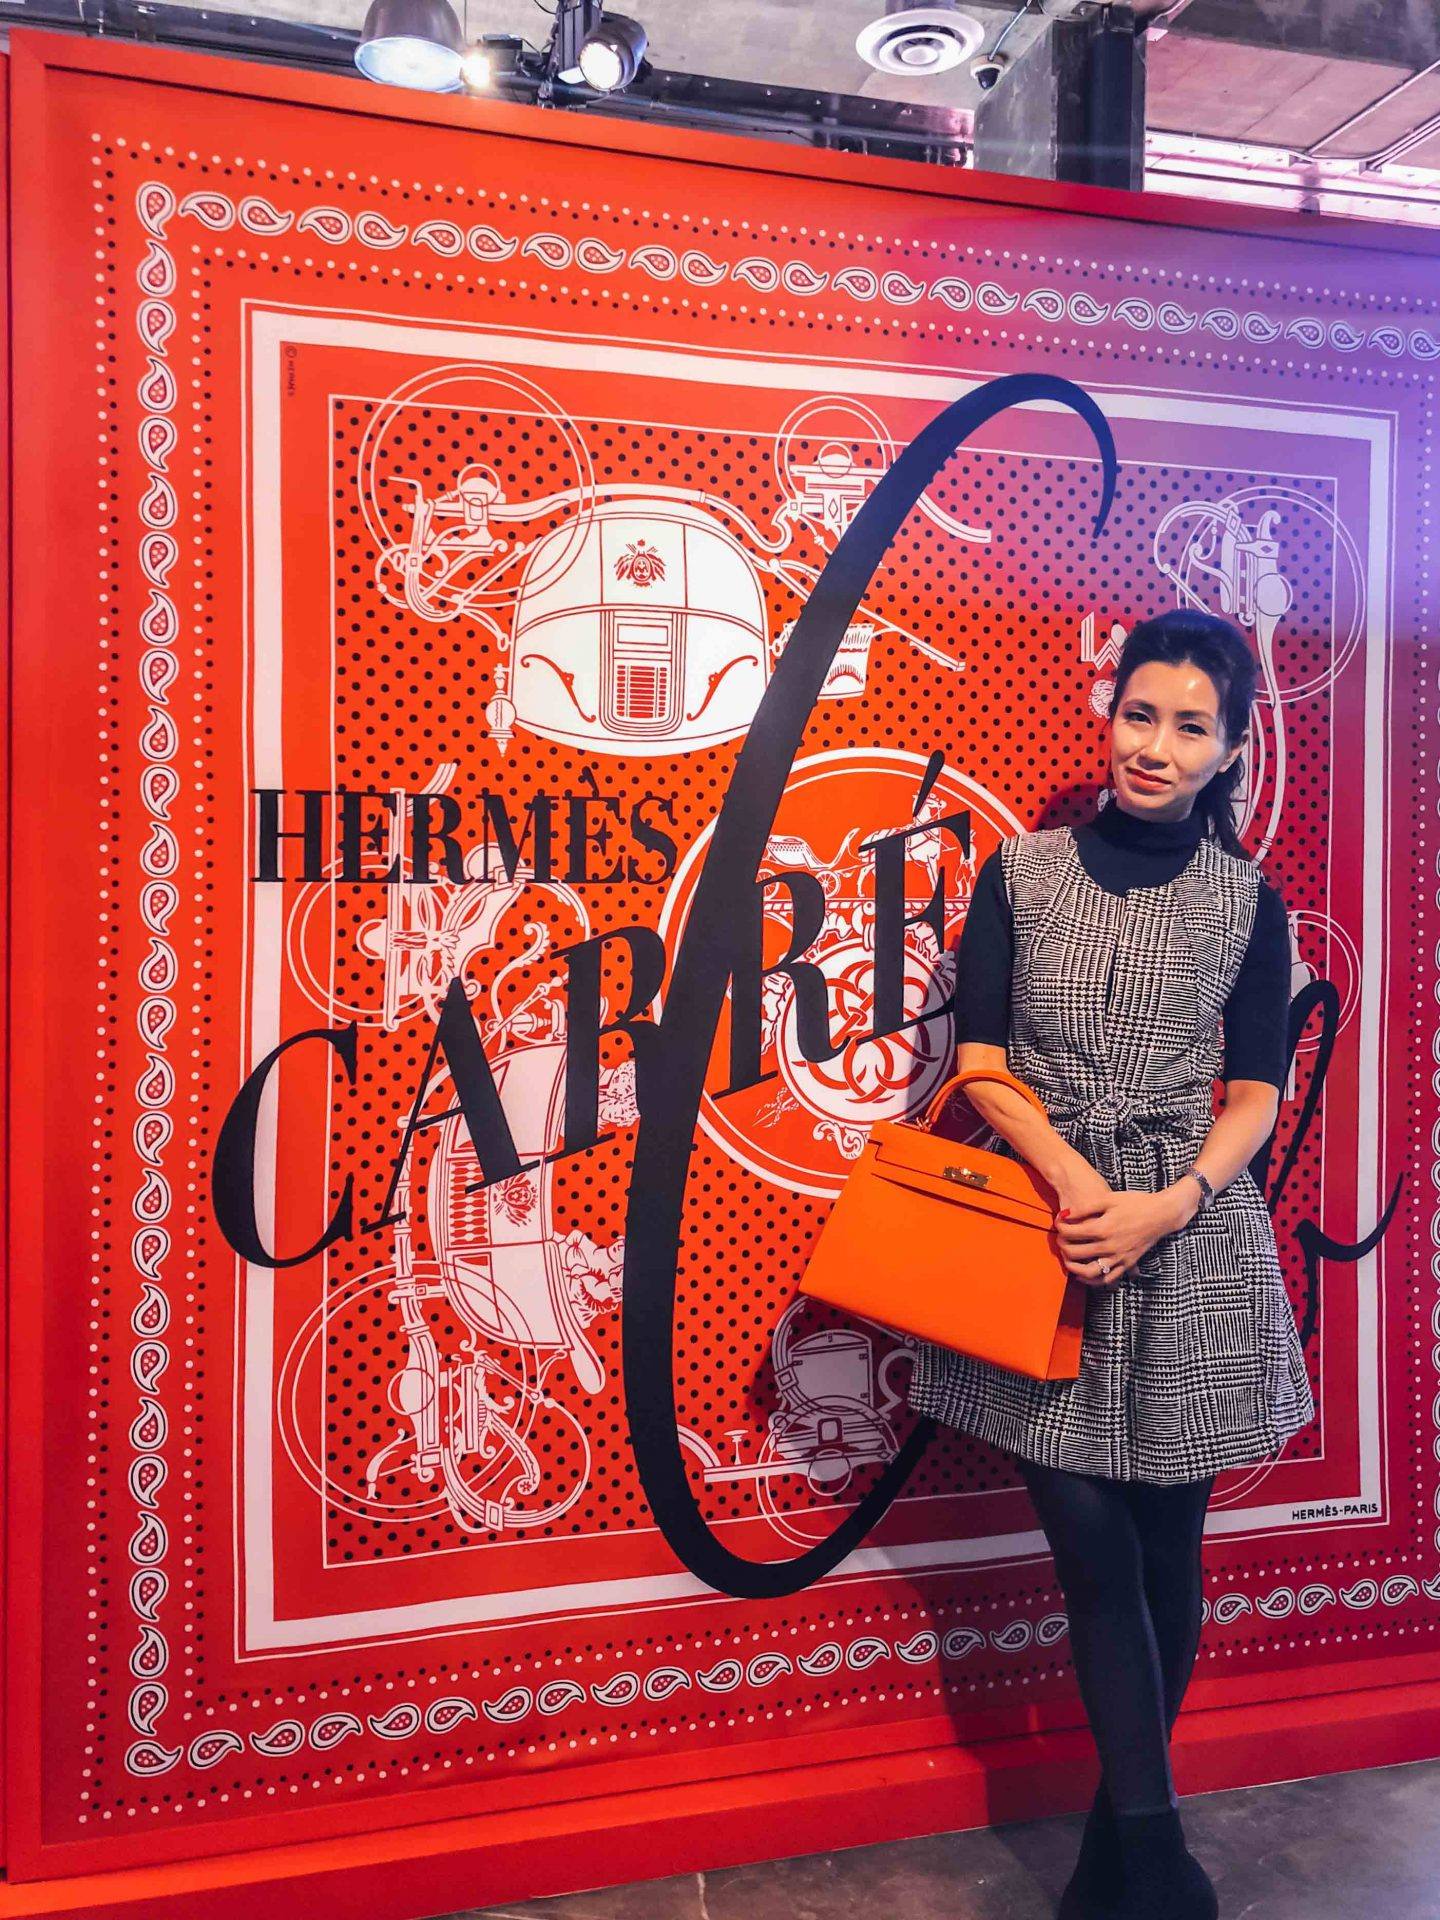 Los Angeles: Inside Look of Hermès Carré Club Pop Up